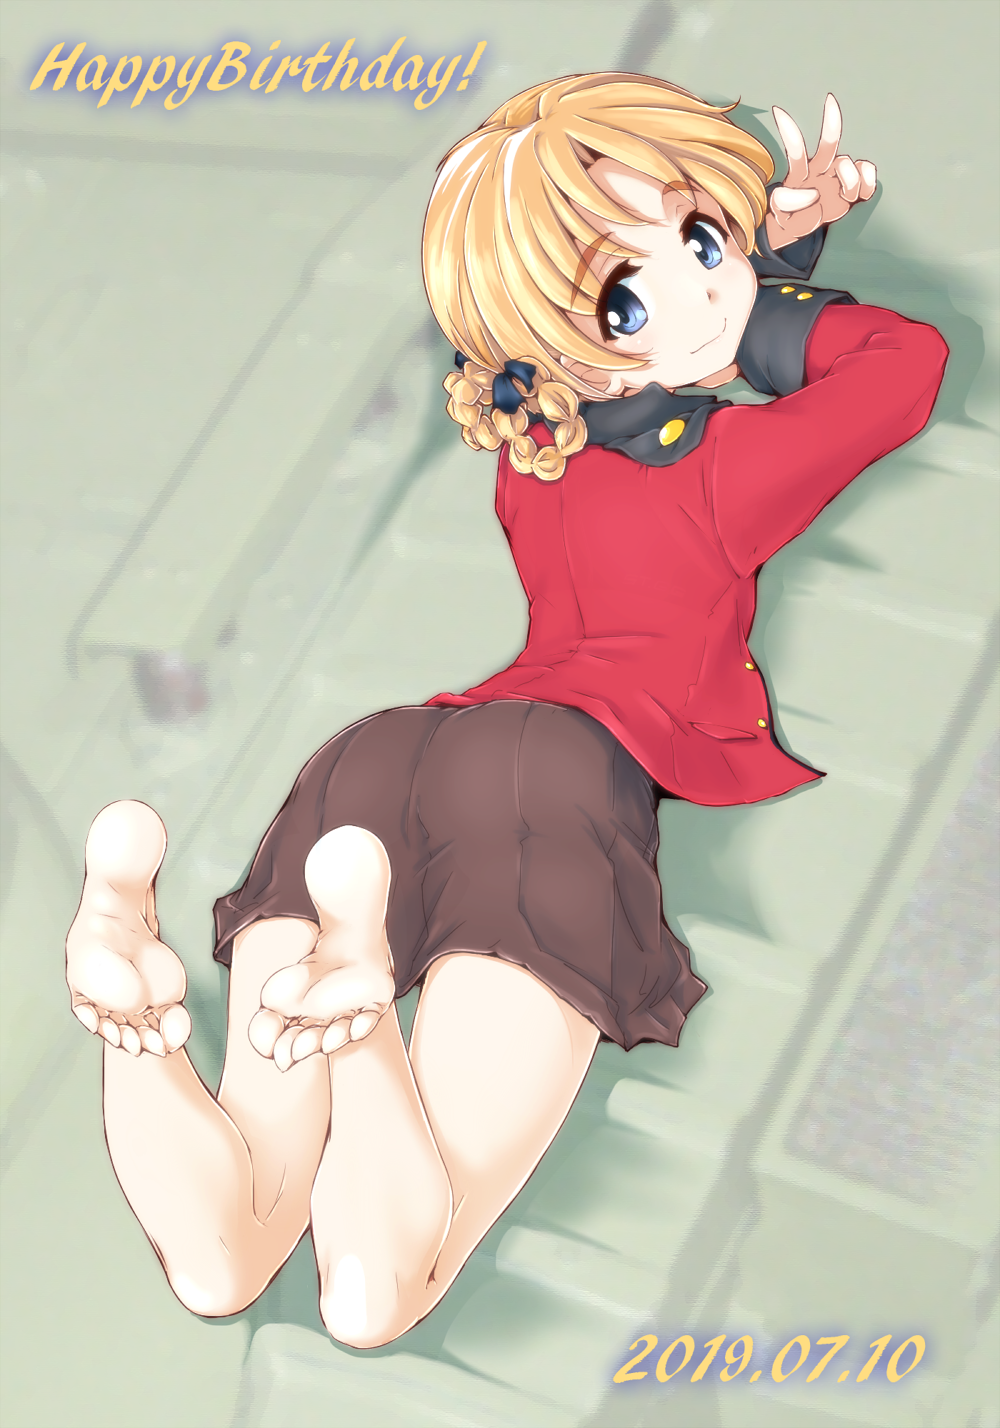 1girl arms_up bangs barefoot black_ribbon black_skirt blue_eyes braid closed_mouth commentary dated epaulettes from_above girls_und_panzer hair_ribbon highres jacket long_sleeves looking_at_viewer looking_back lying military military_uniform miniskirt on_stomach on_vehicle orange_hair orange_pekoe_(girls_und_panzer) parted_bangs pleated_skirt red_jacket ribbon sasaki_akira_(ugc) shadow short_hair skirt smile solo st._gloriana's_military_uniform tied_hair twin_braids uniform v